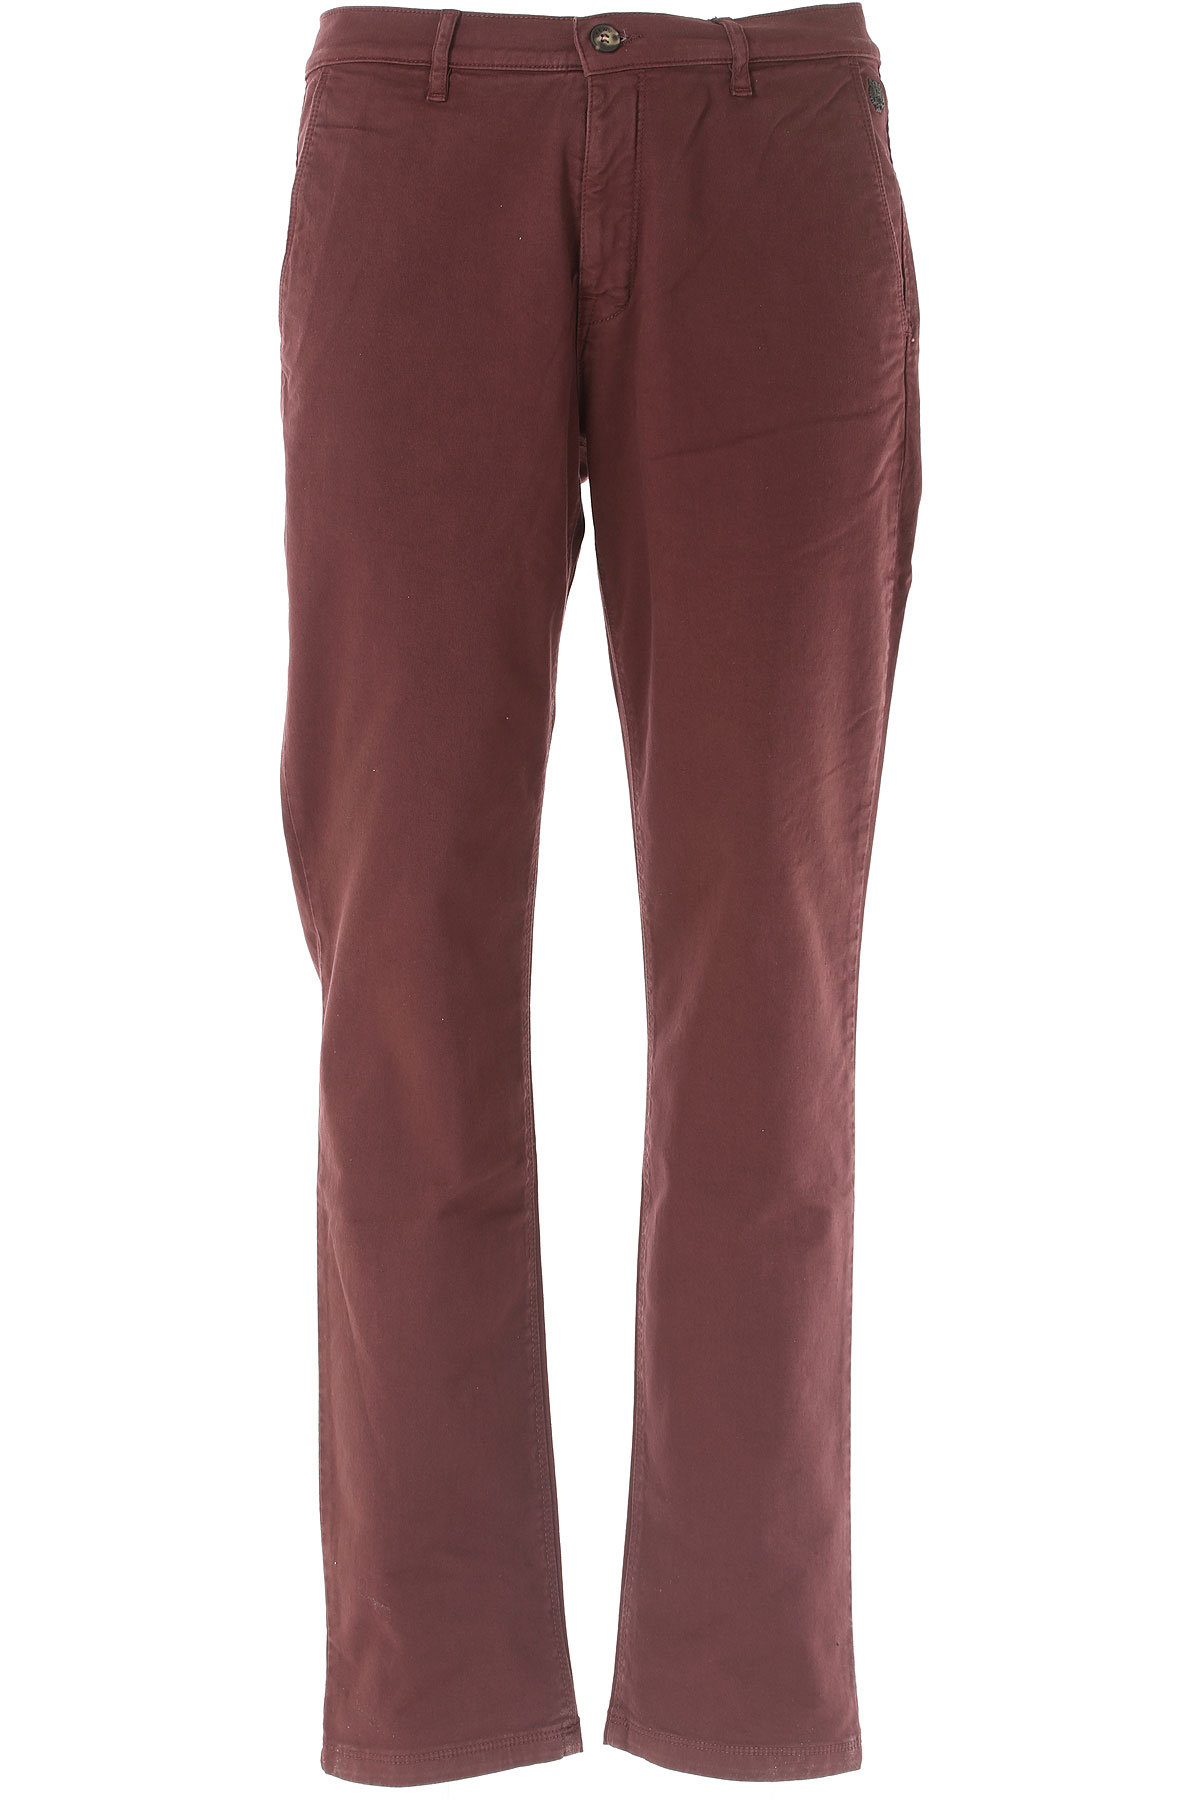 Kenzo Pants for Men On Sale, Bordeaux, Cotton, 2017, 32 34 36